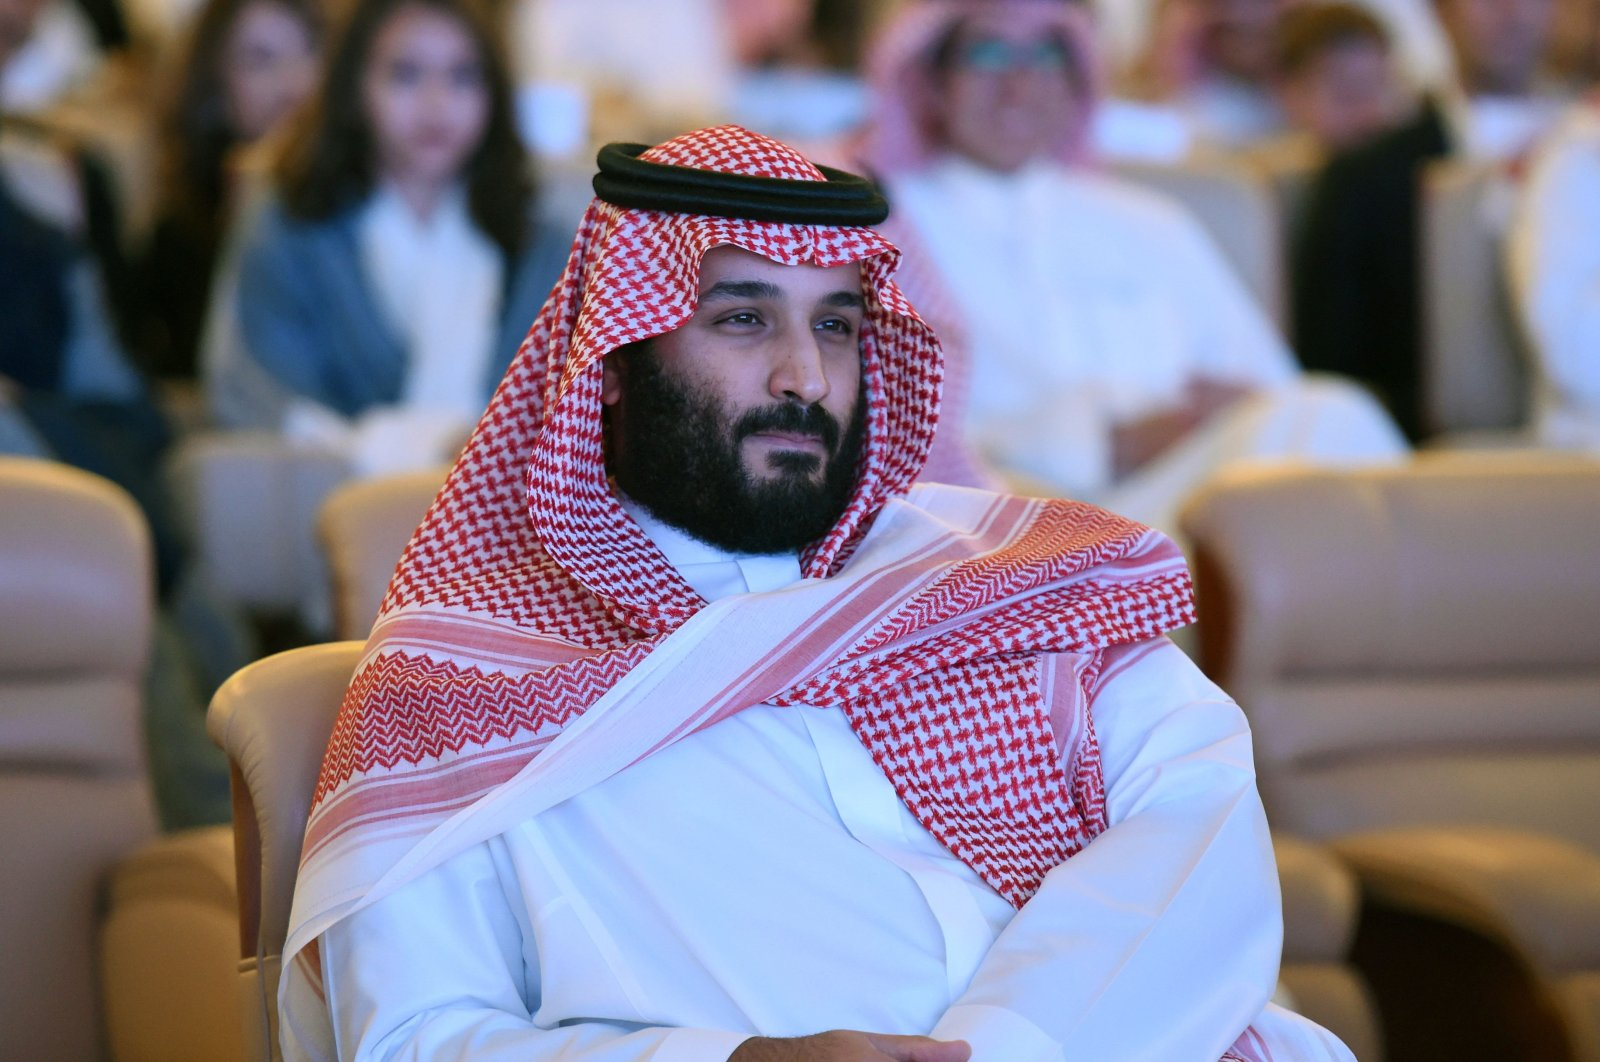 Saudi Crown Prince Mohammed bin Salman attending the Future Investment Initiative (FII) conference in Riyadh, 2017. (AFP Photo)